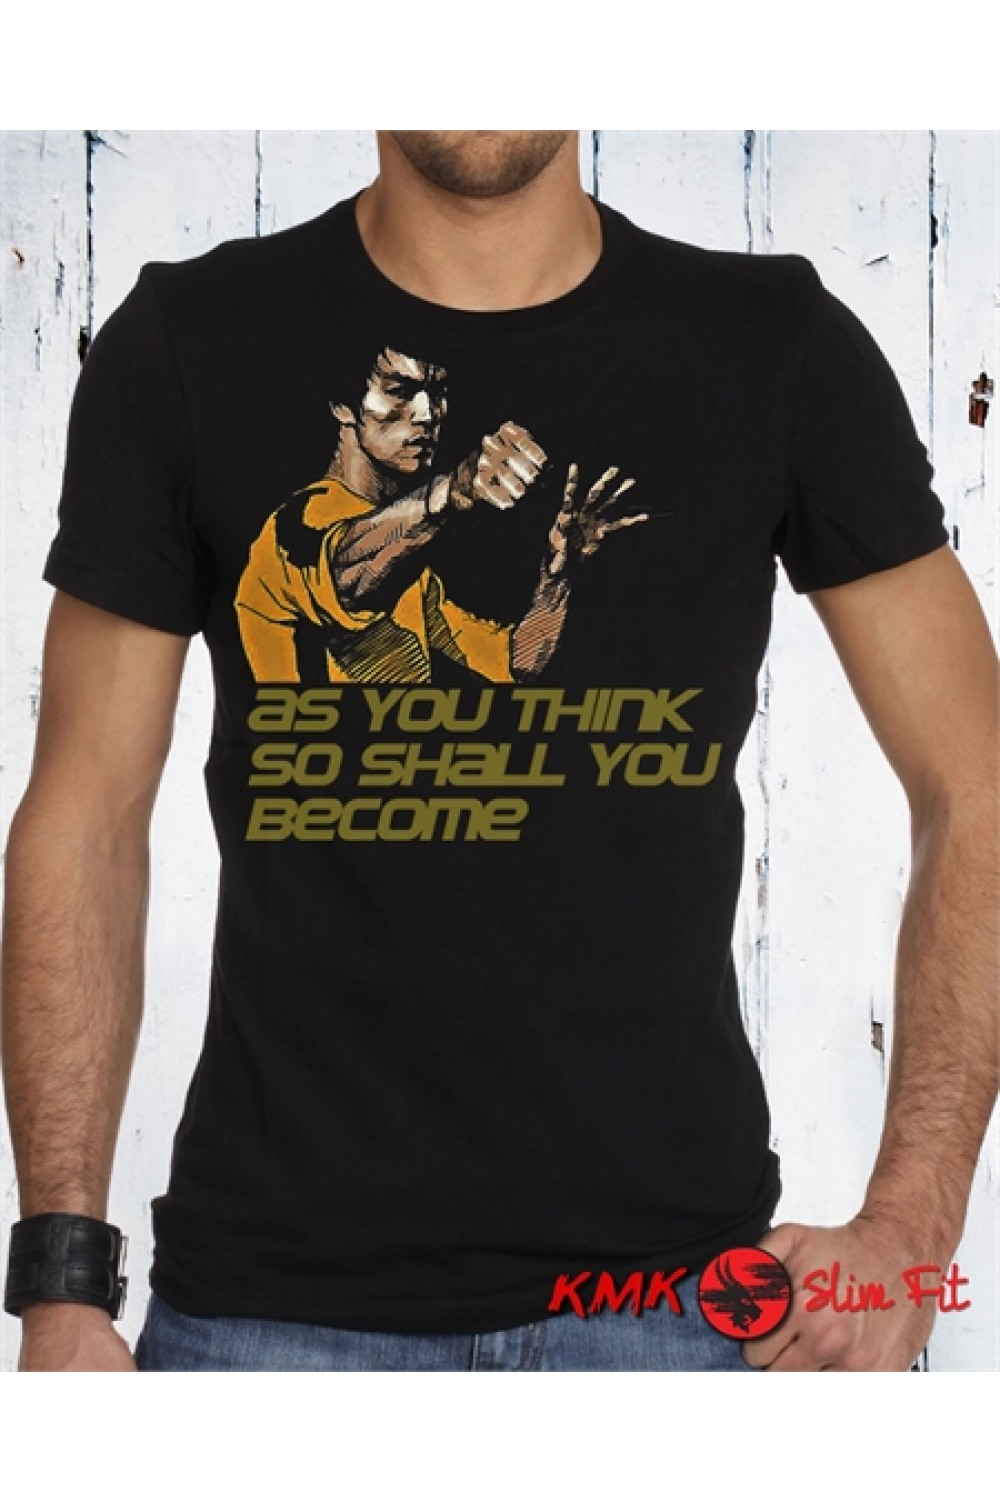 BRUCE LEE - As you think Printed T shirt | Bruce Lee Tanktop | Bruce Lee Tee | Motivation Shirt